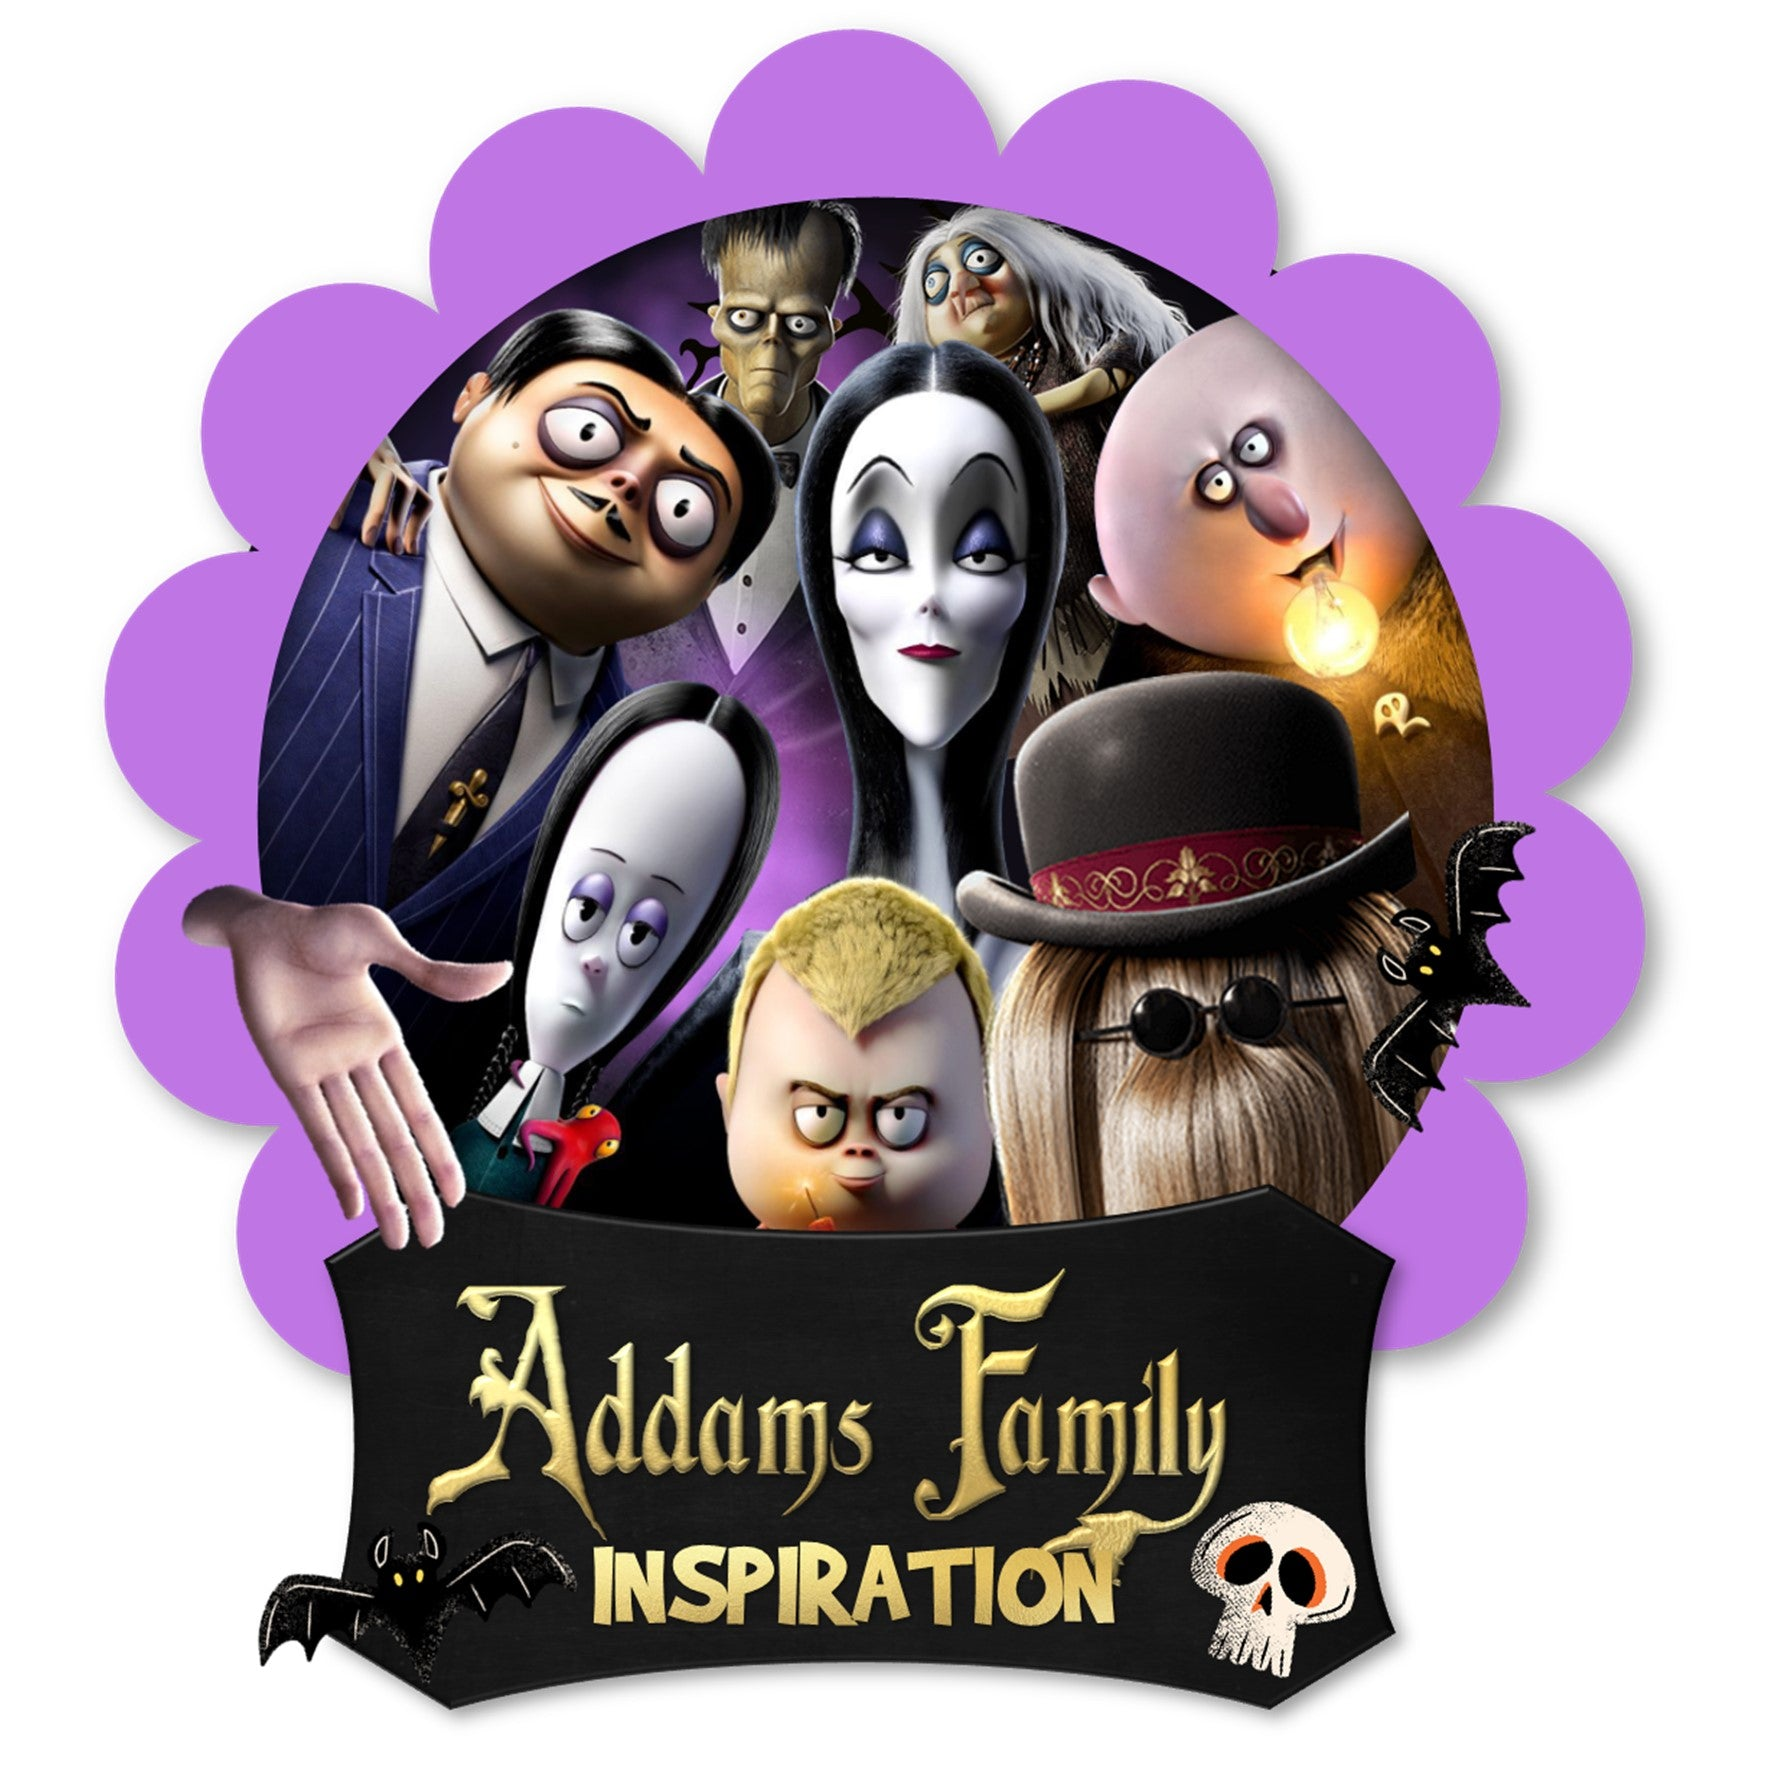 FAMILY ADDAMS INSPIRATION